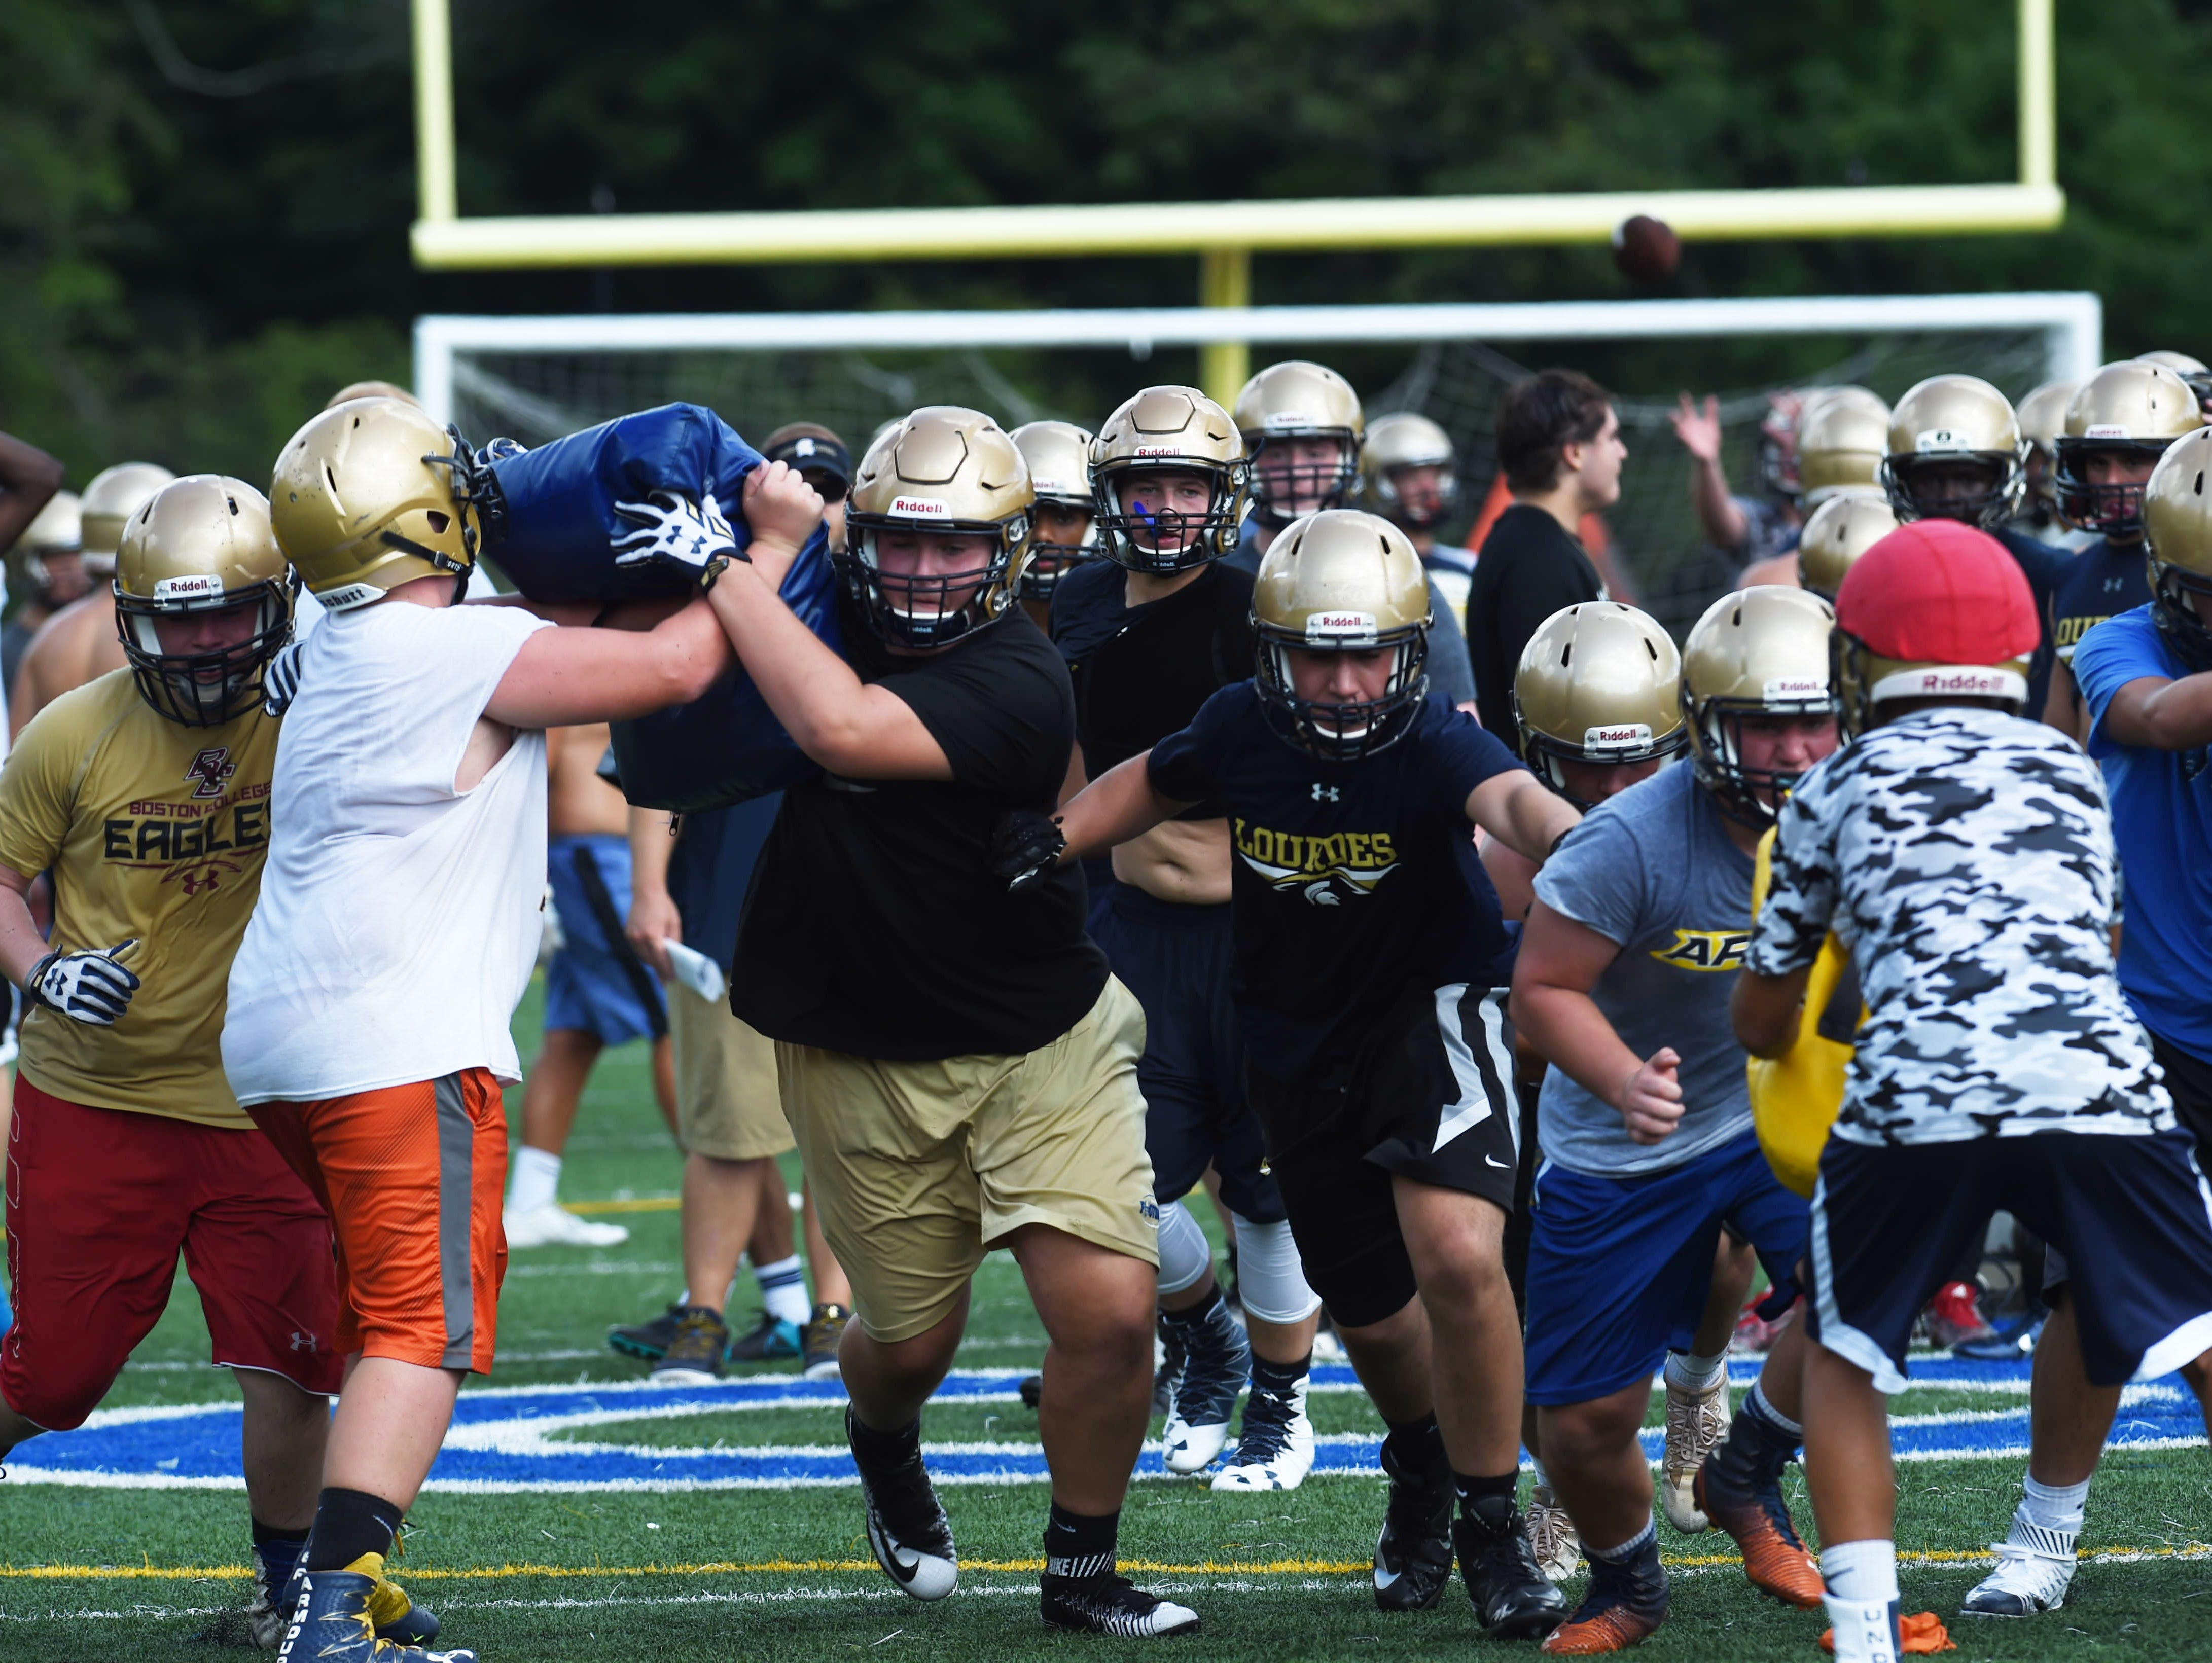 Junior Anthony D'Urso, center left, pushes past fellow junior Steven Garnot, left, during preseason football practice for Our Lady of Lourdes High School.